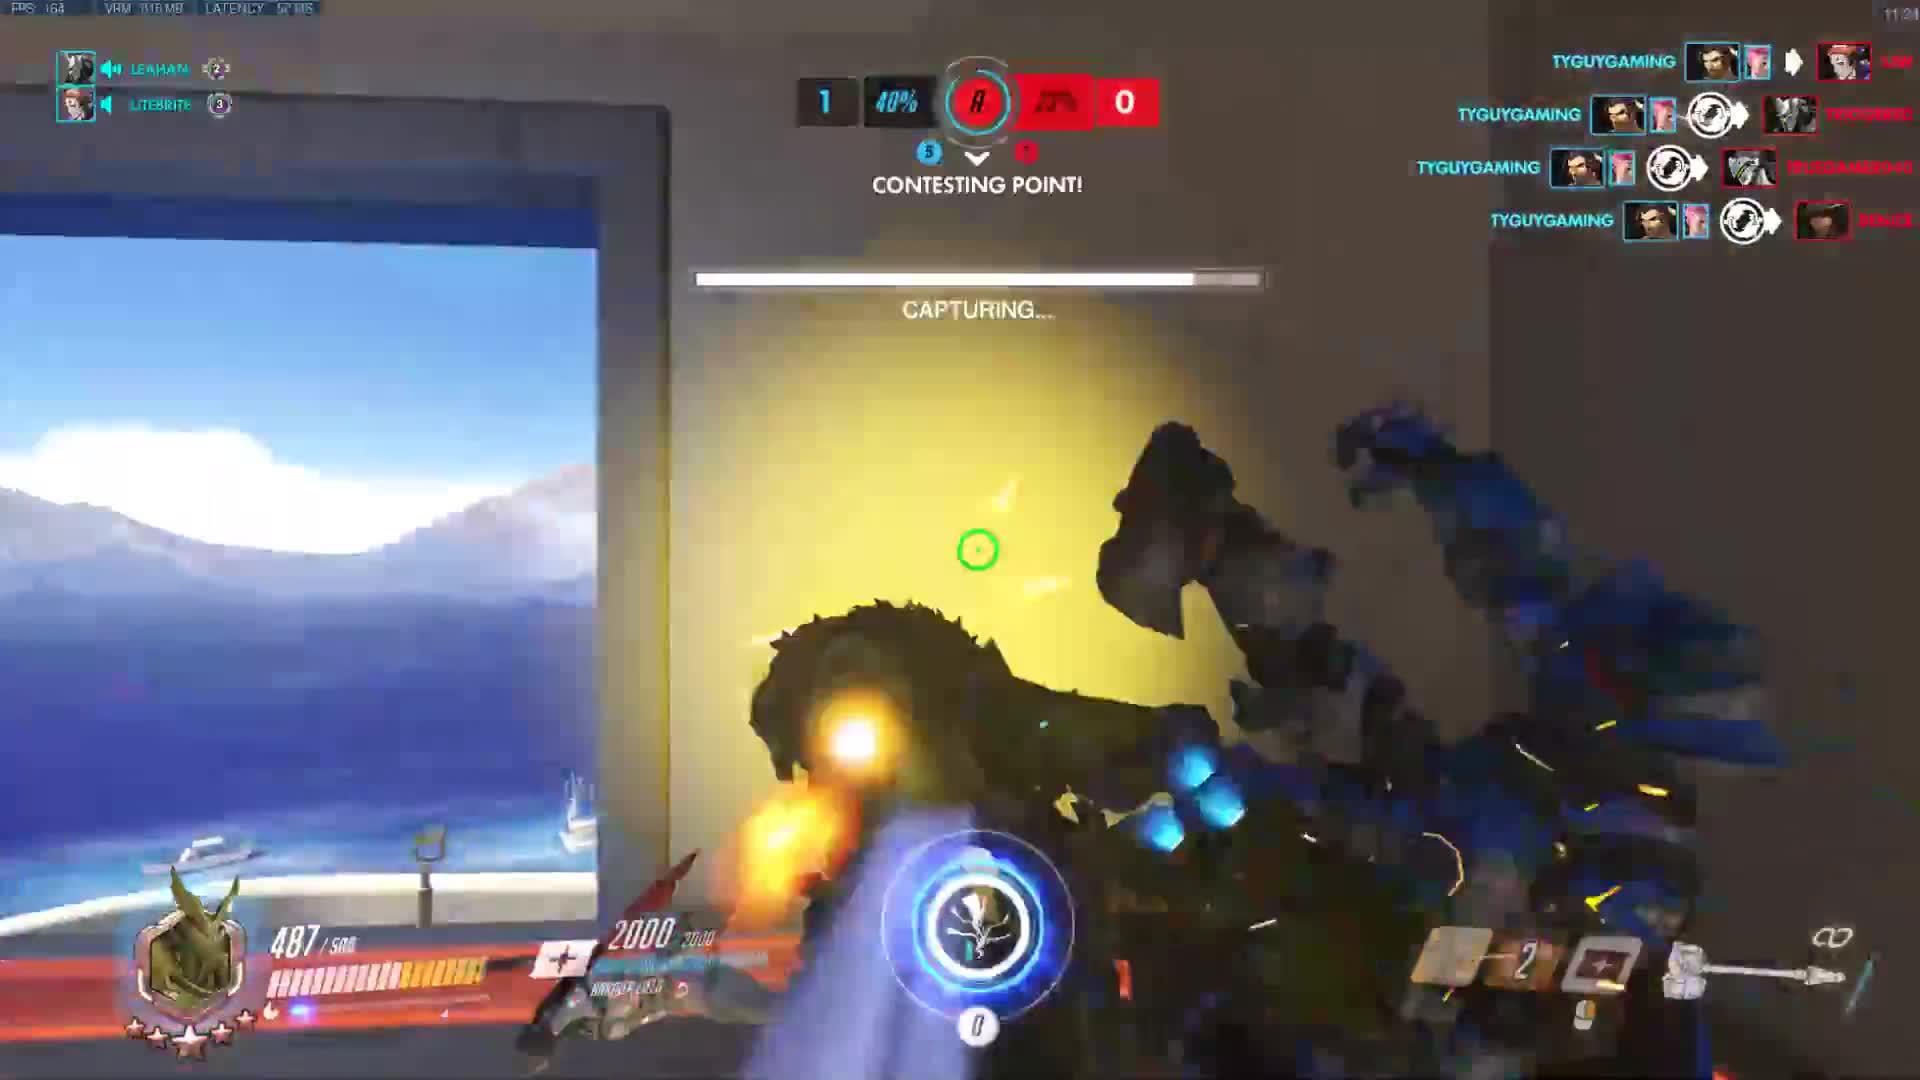 Gaming, Overwatch GIFs